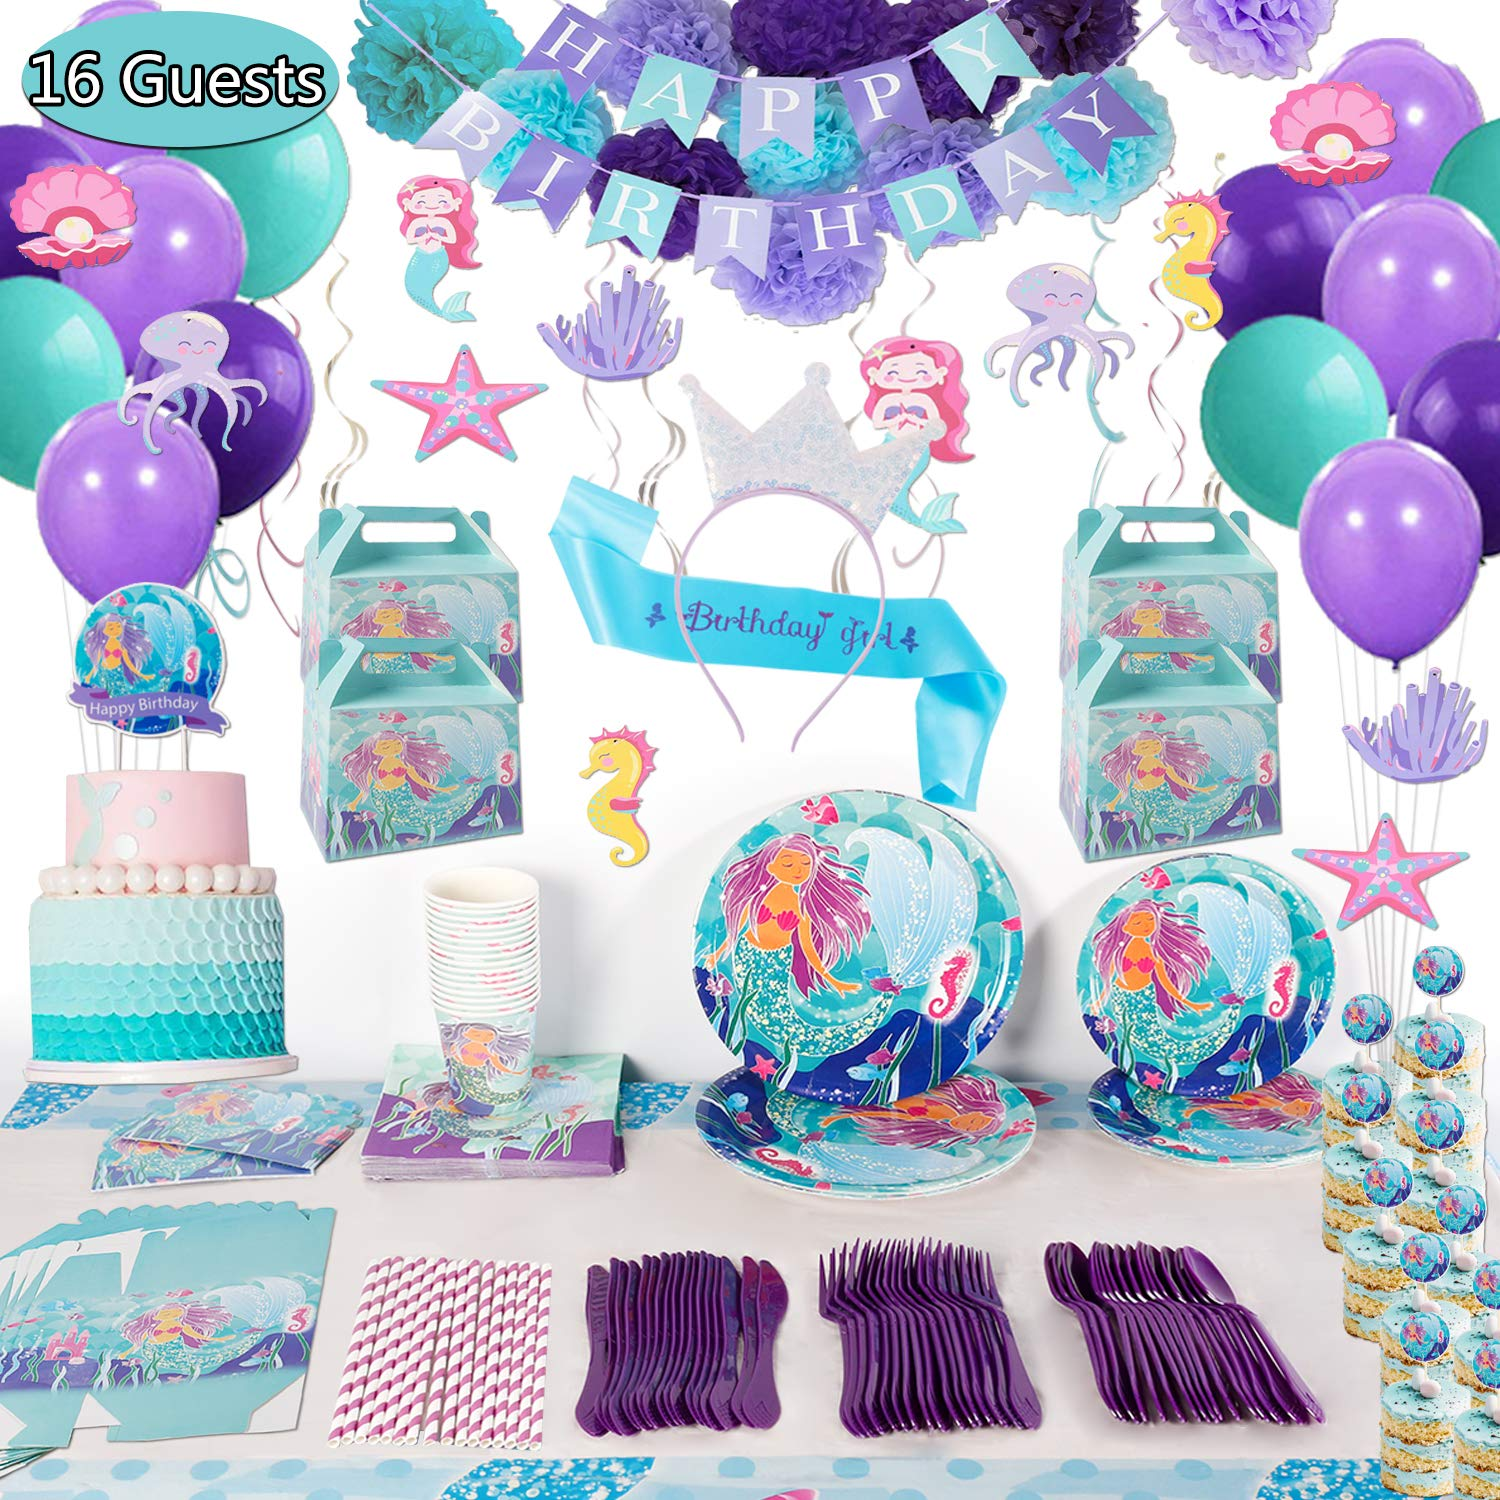 Mermaid Birthday Party Supplies Decorations Kit Favors - Serves 16 Guests -Tablecloth, Plates, Napkins, Cups, Spoons, Knives, Banner, Balloons, for Girl's Birthday Party and Baby Shower Decor -207 Pcs by Enjoy Holiday 1981